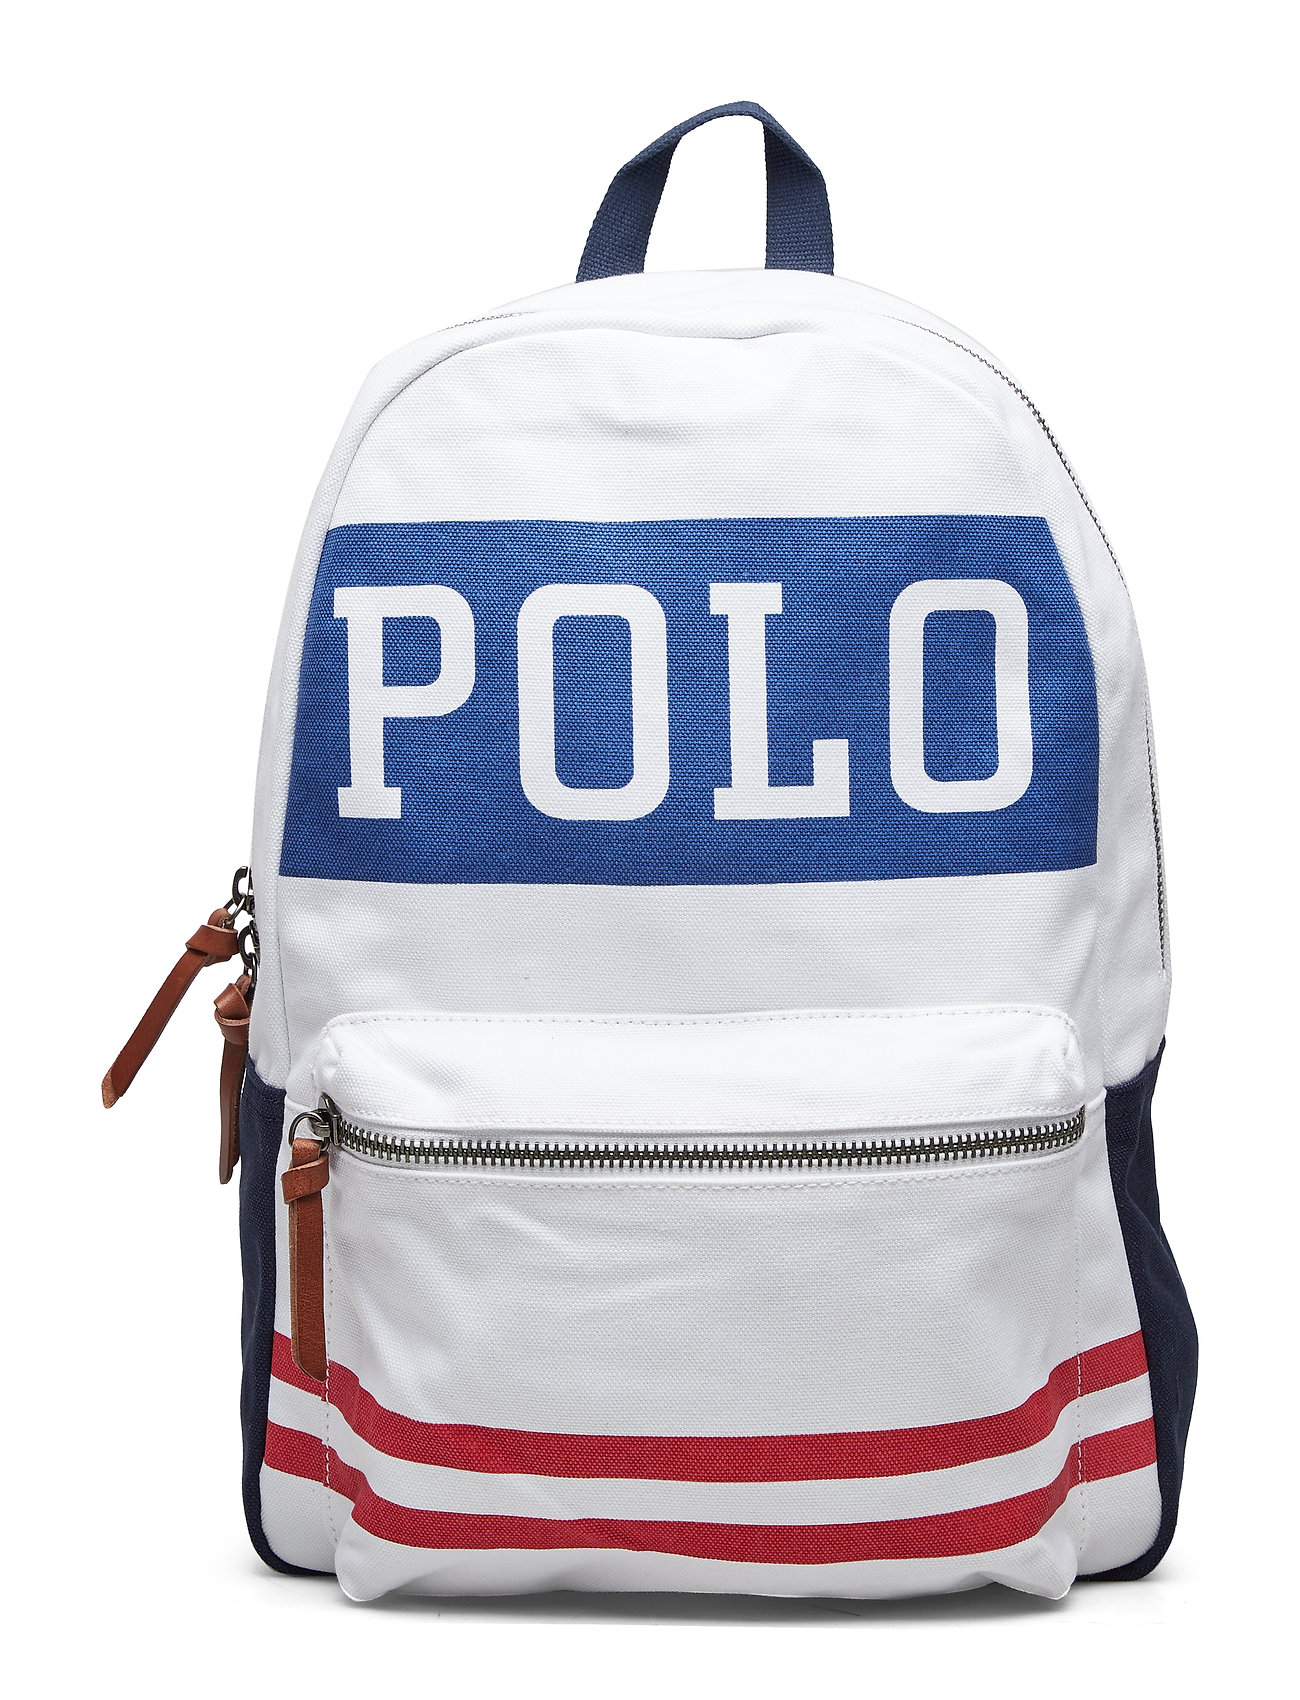 Polo Ralph Lauren Polo Canvas Backpack - WHITE